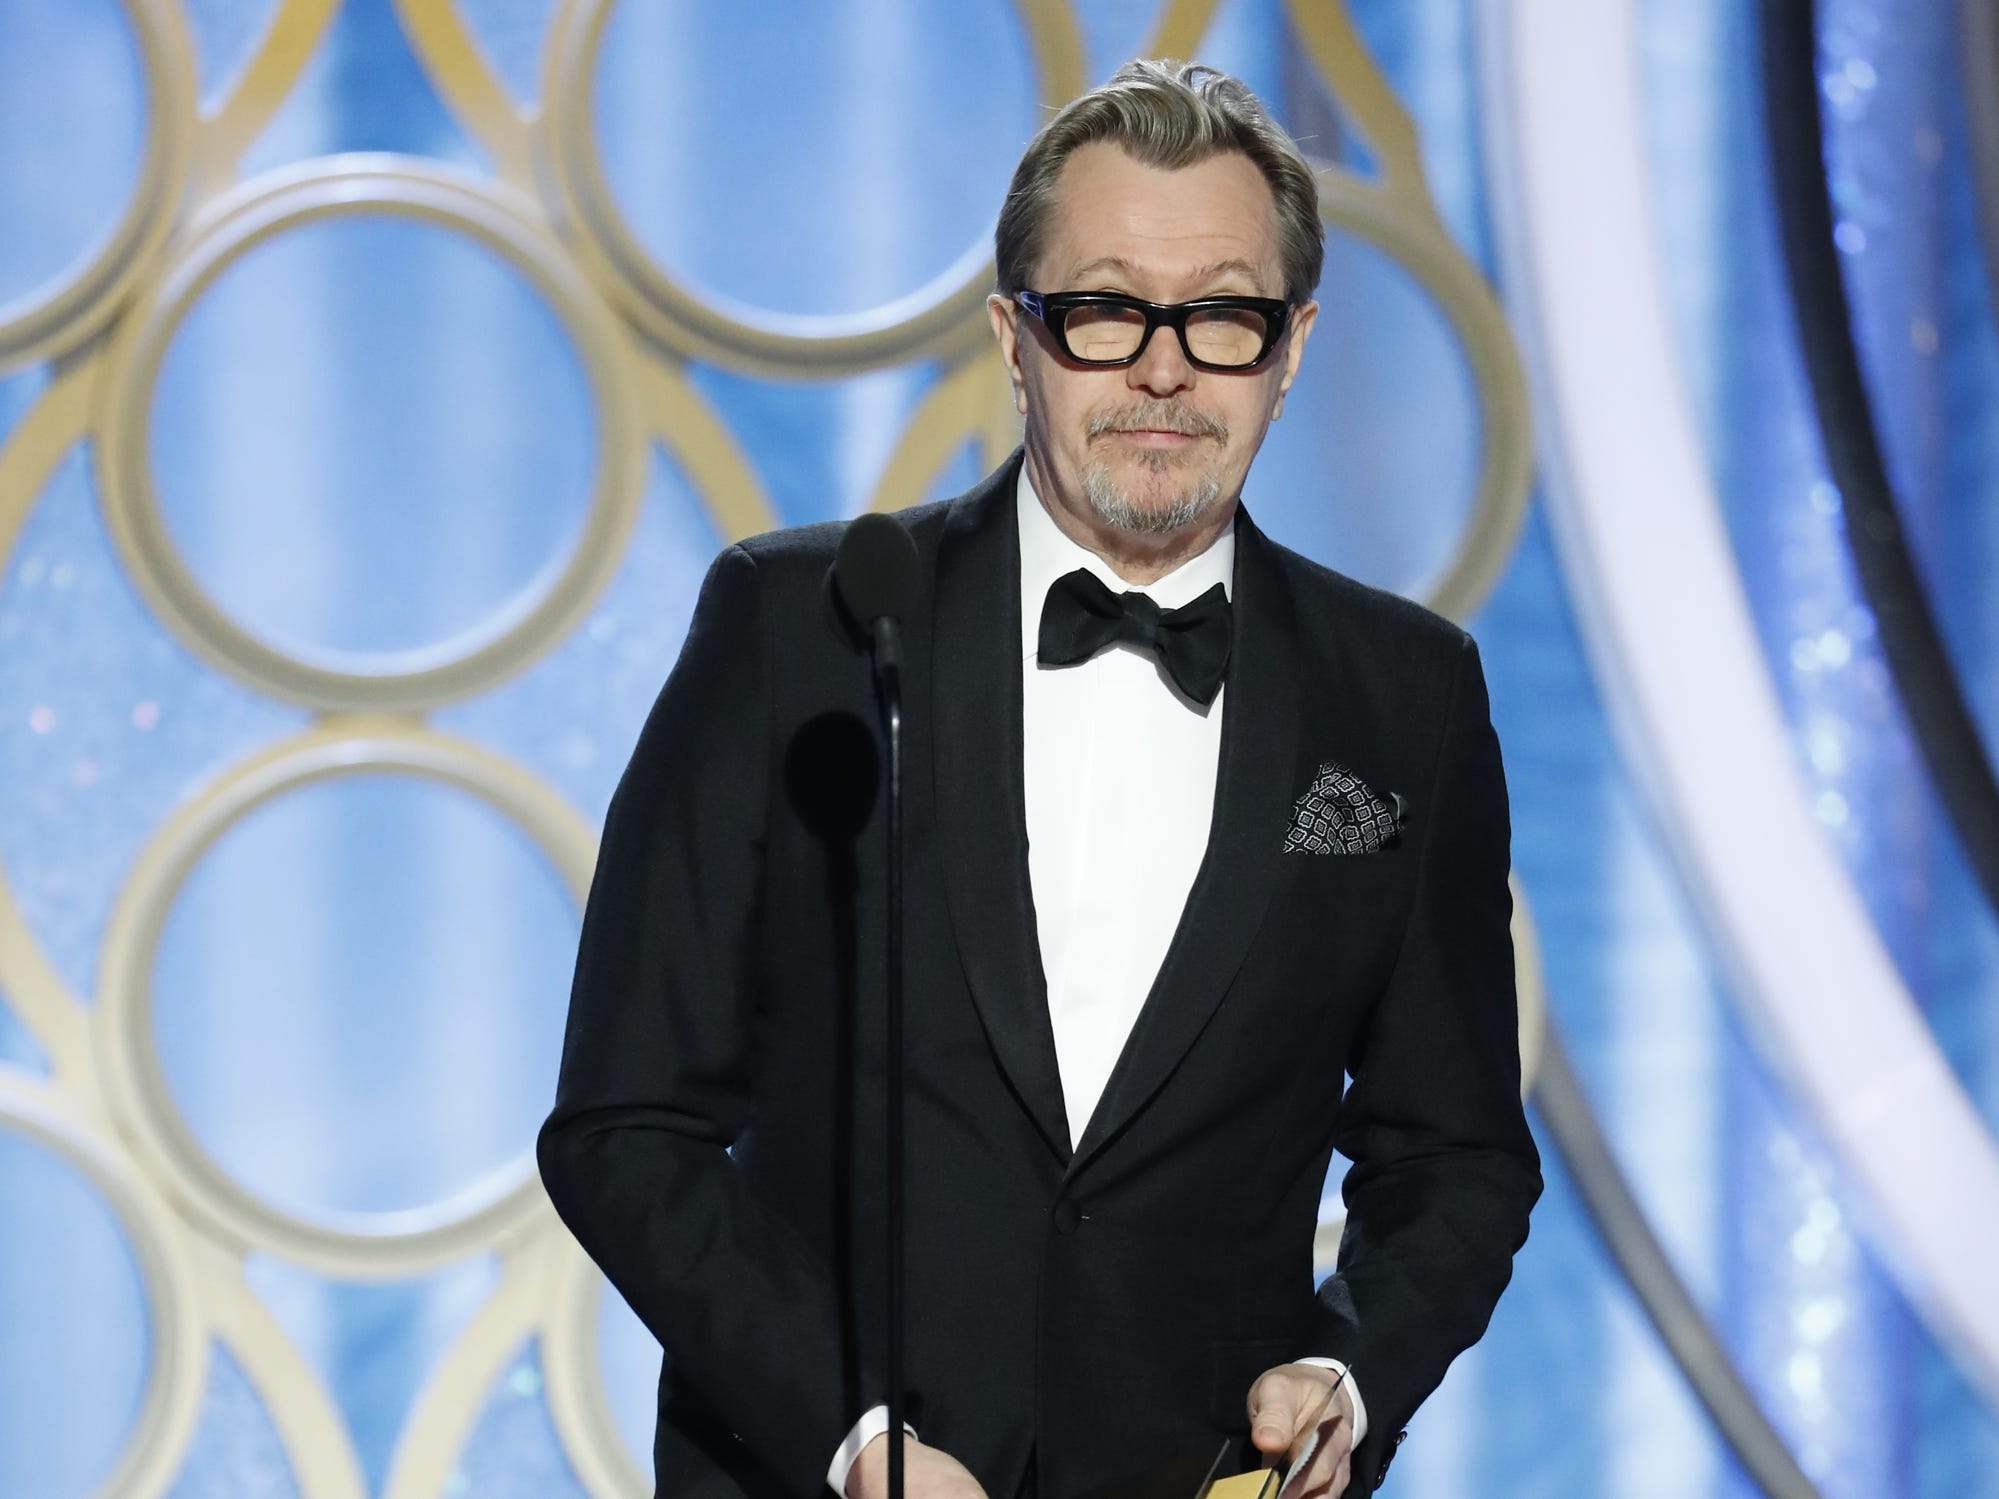 Gary Oldman presents during the 76th Golden Globe Awards.